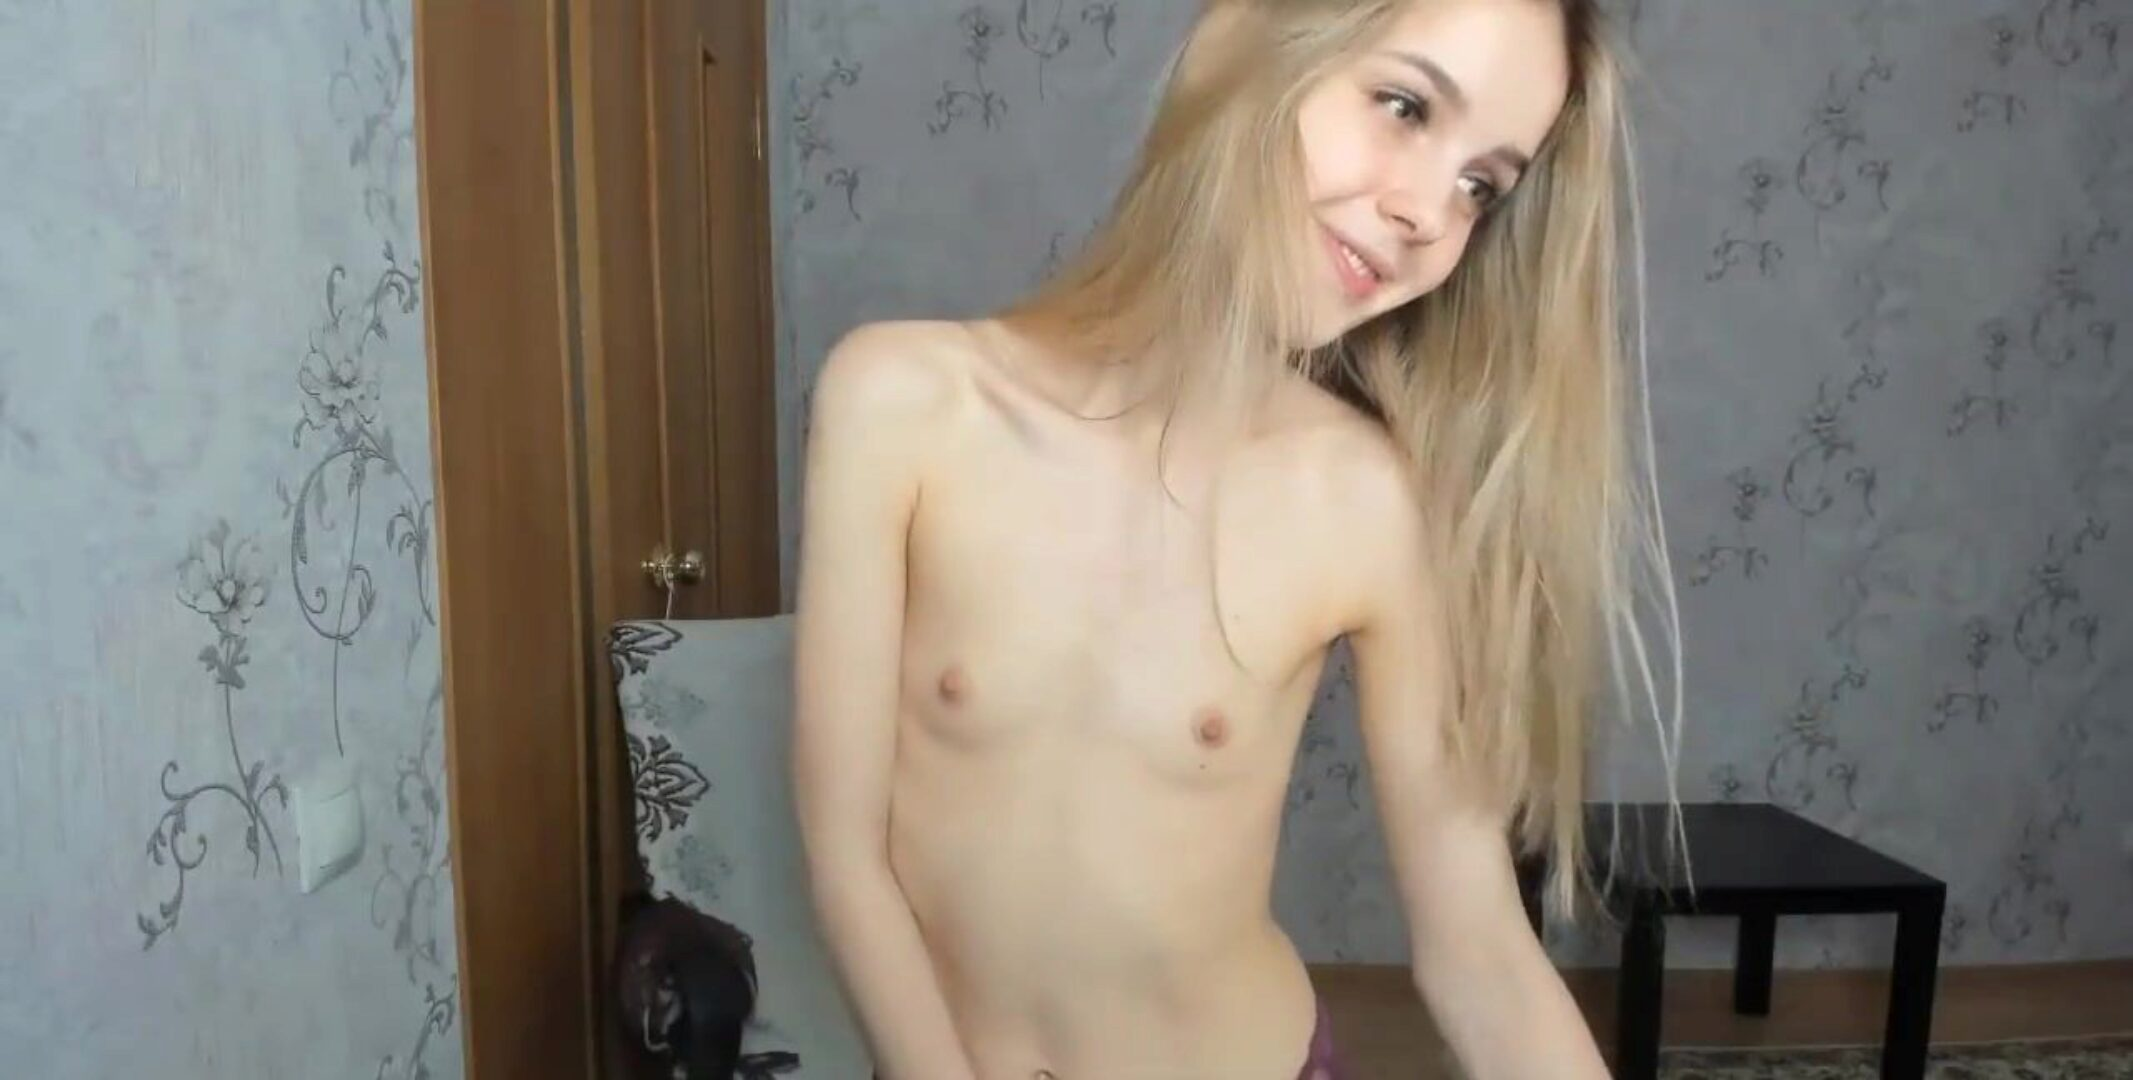 Thin Teen Oils Herself Up And Lets Strangers Give Her Orgasms